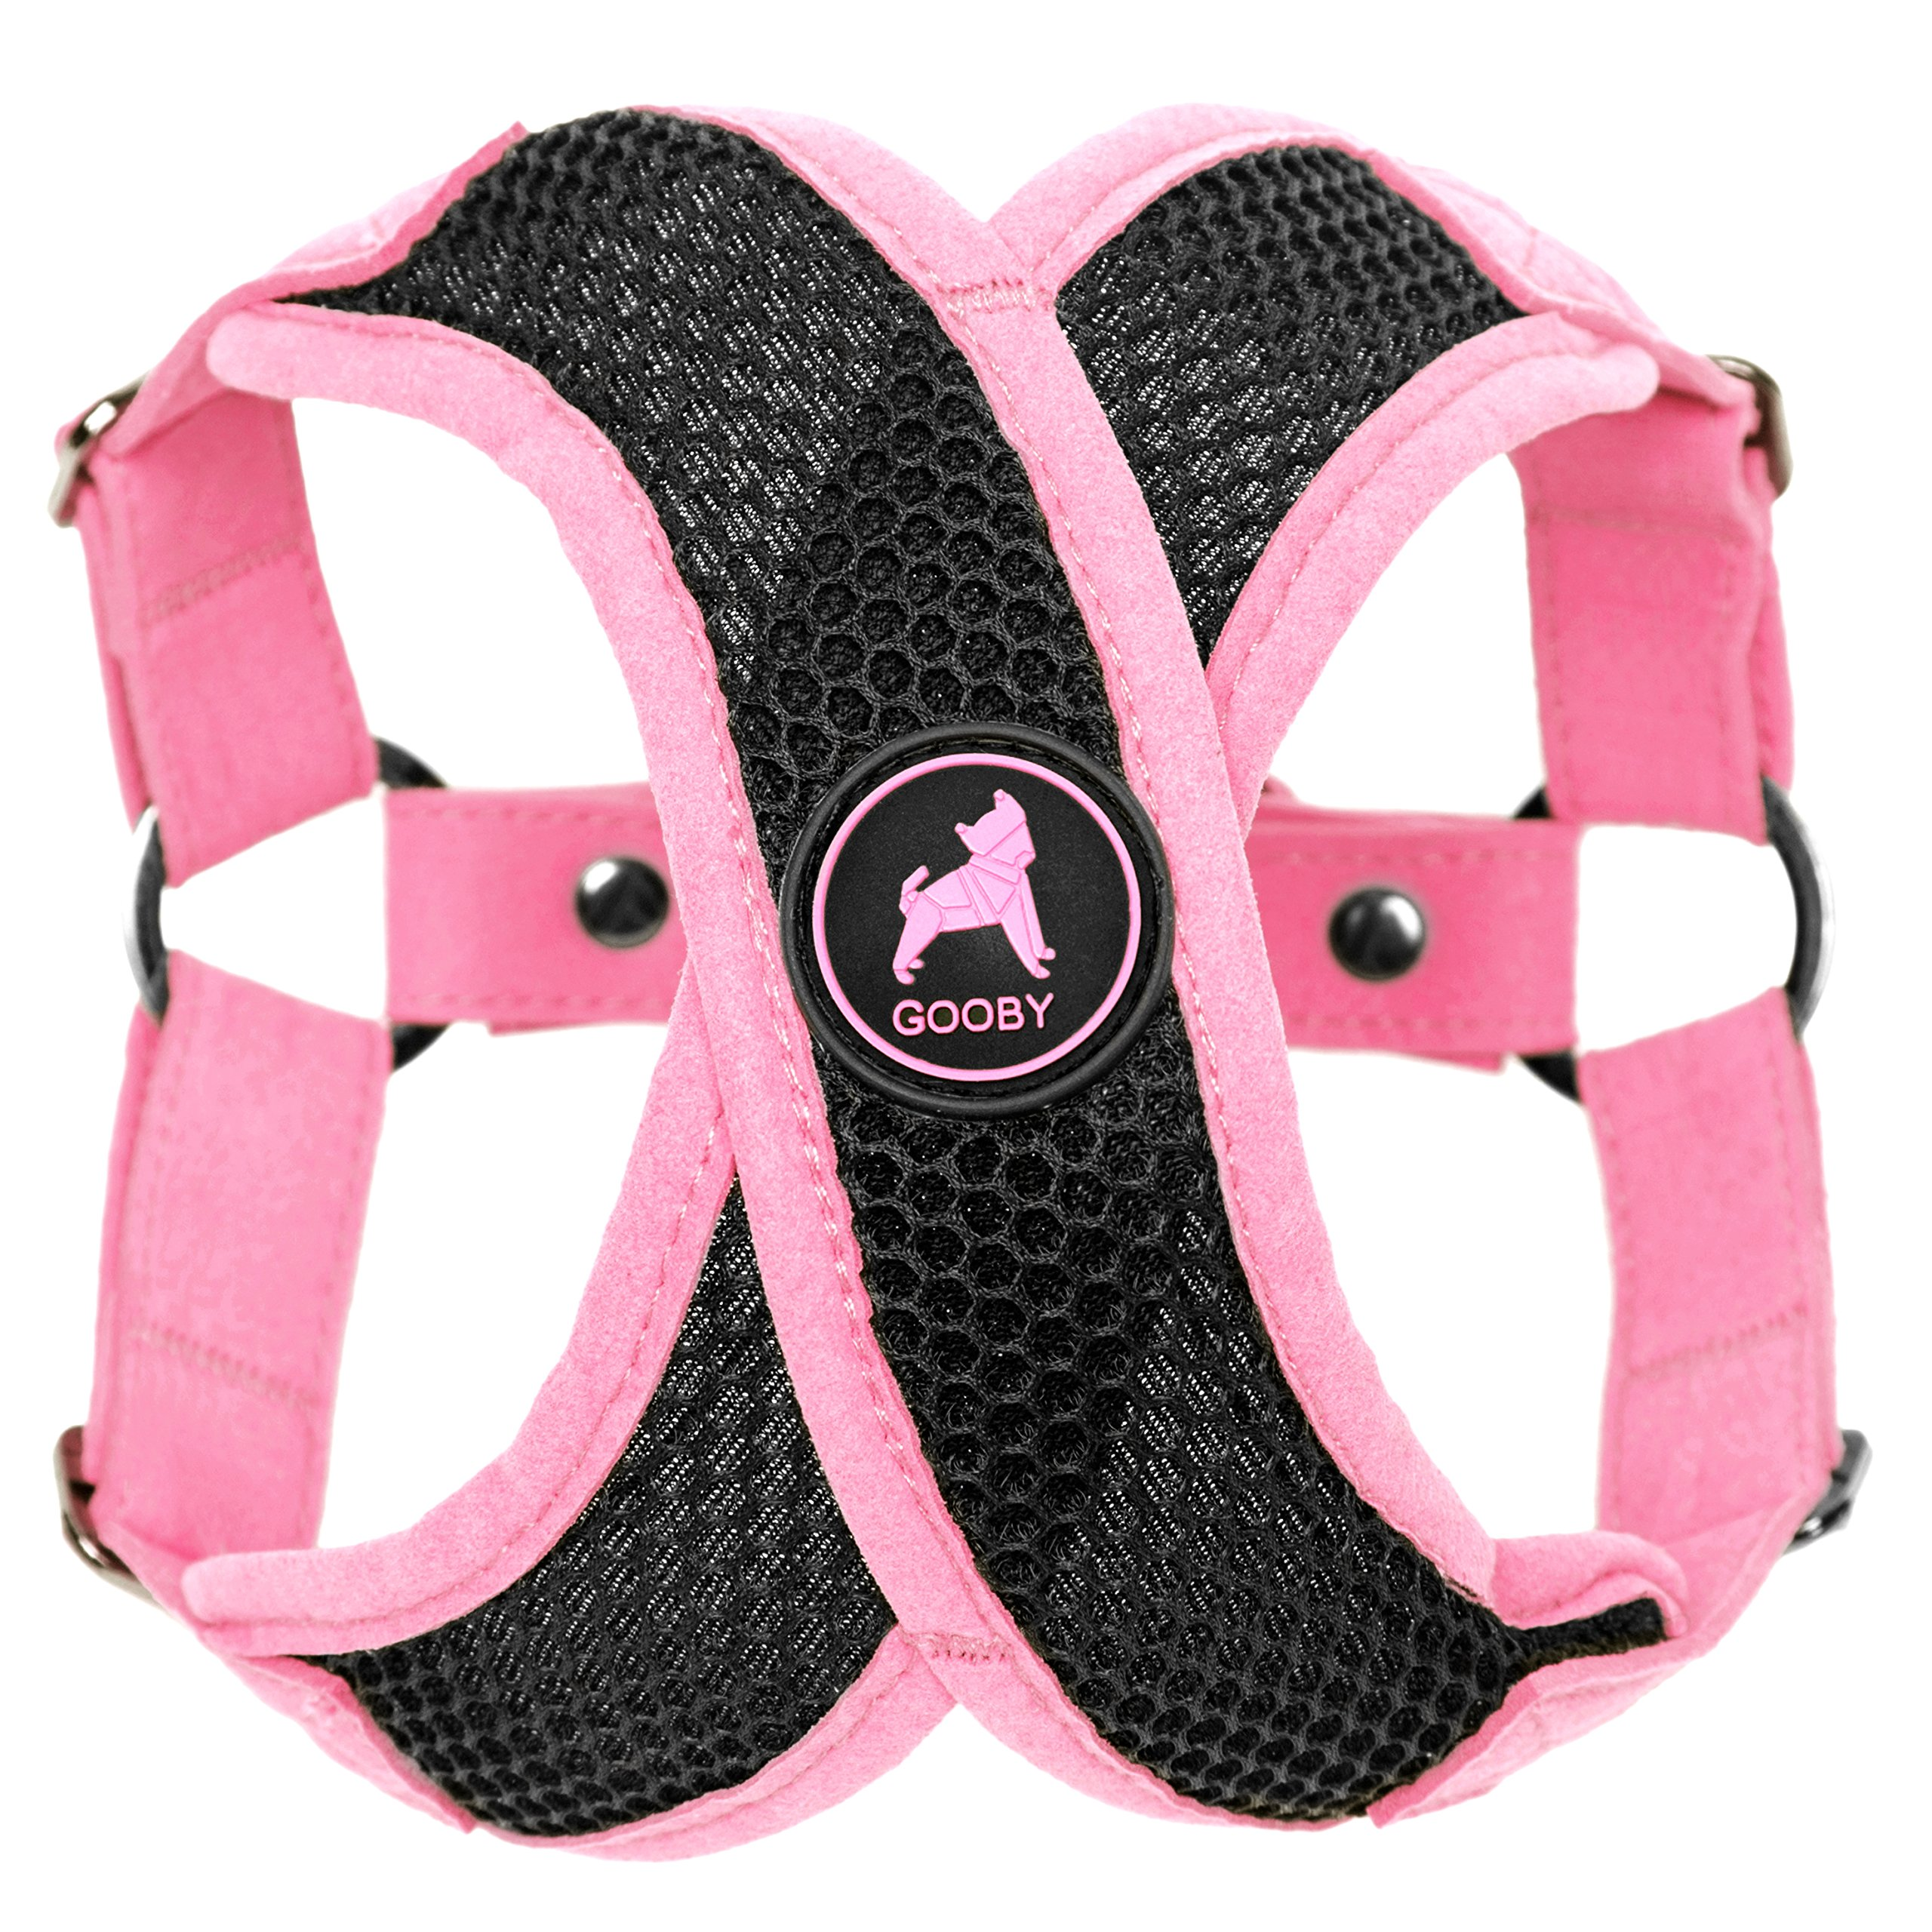 Gooby - Active X Step-in Harness, Choke Free Small Dog Harness with Synthetic Lambskin Soft Strap, Pink, Medium